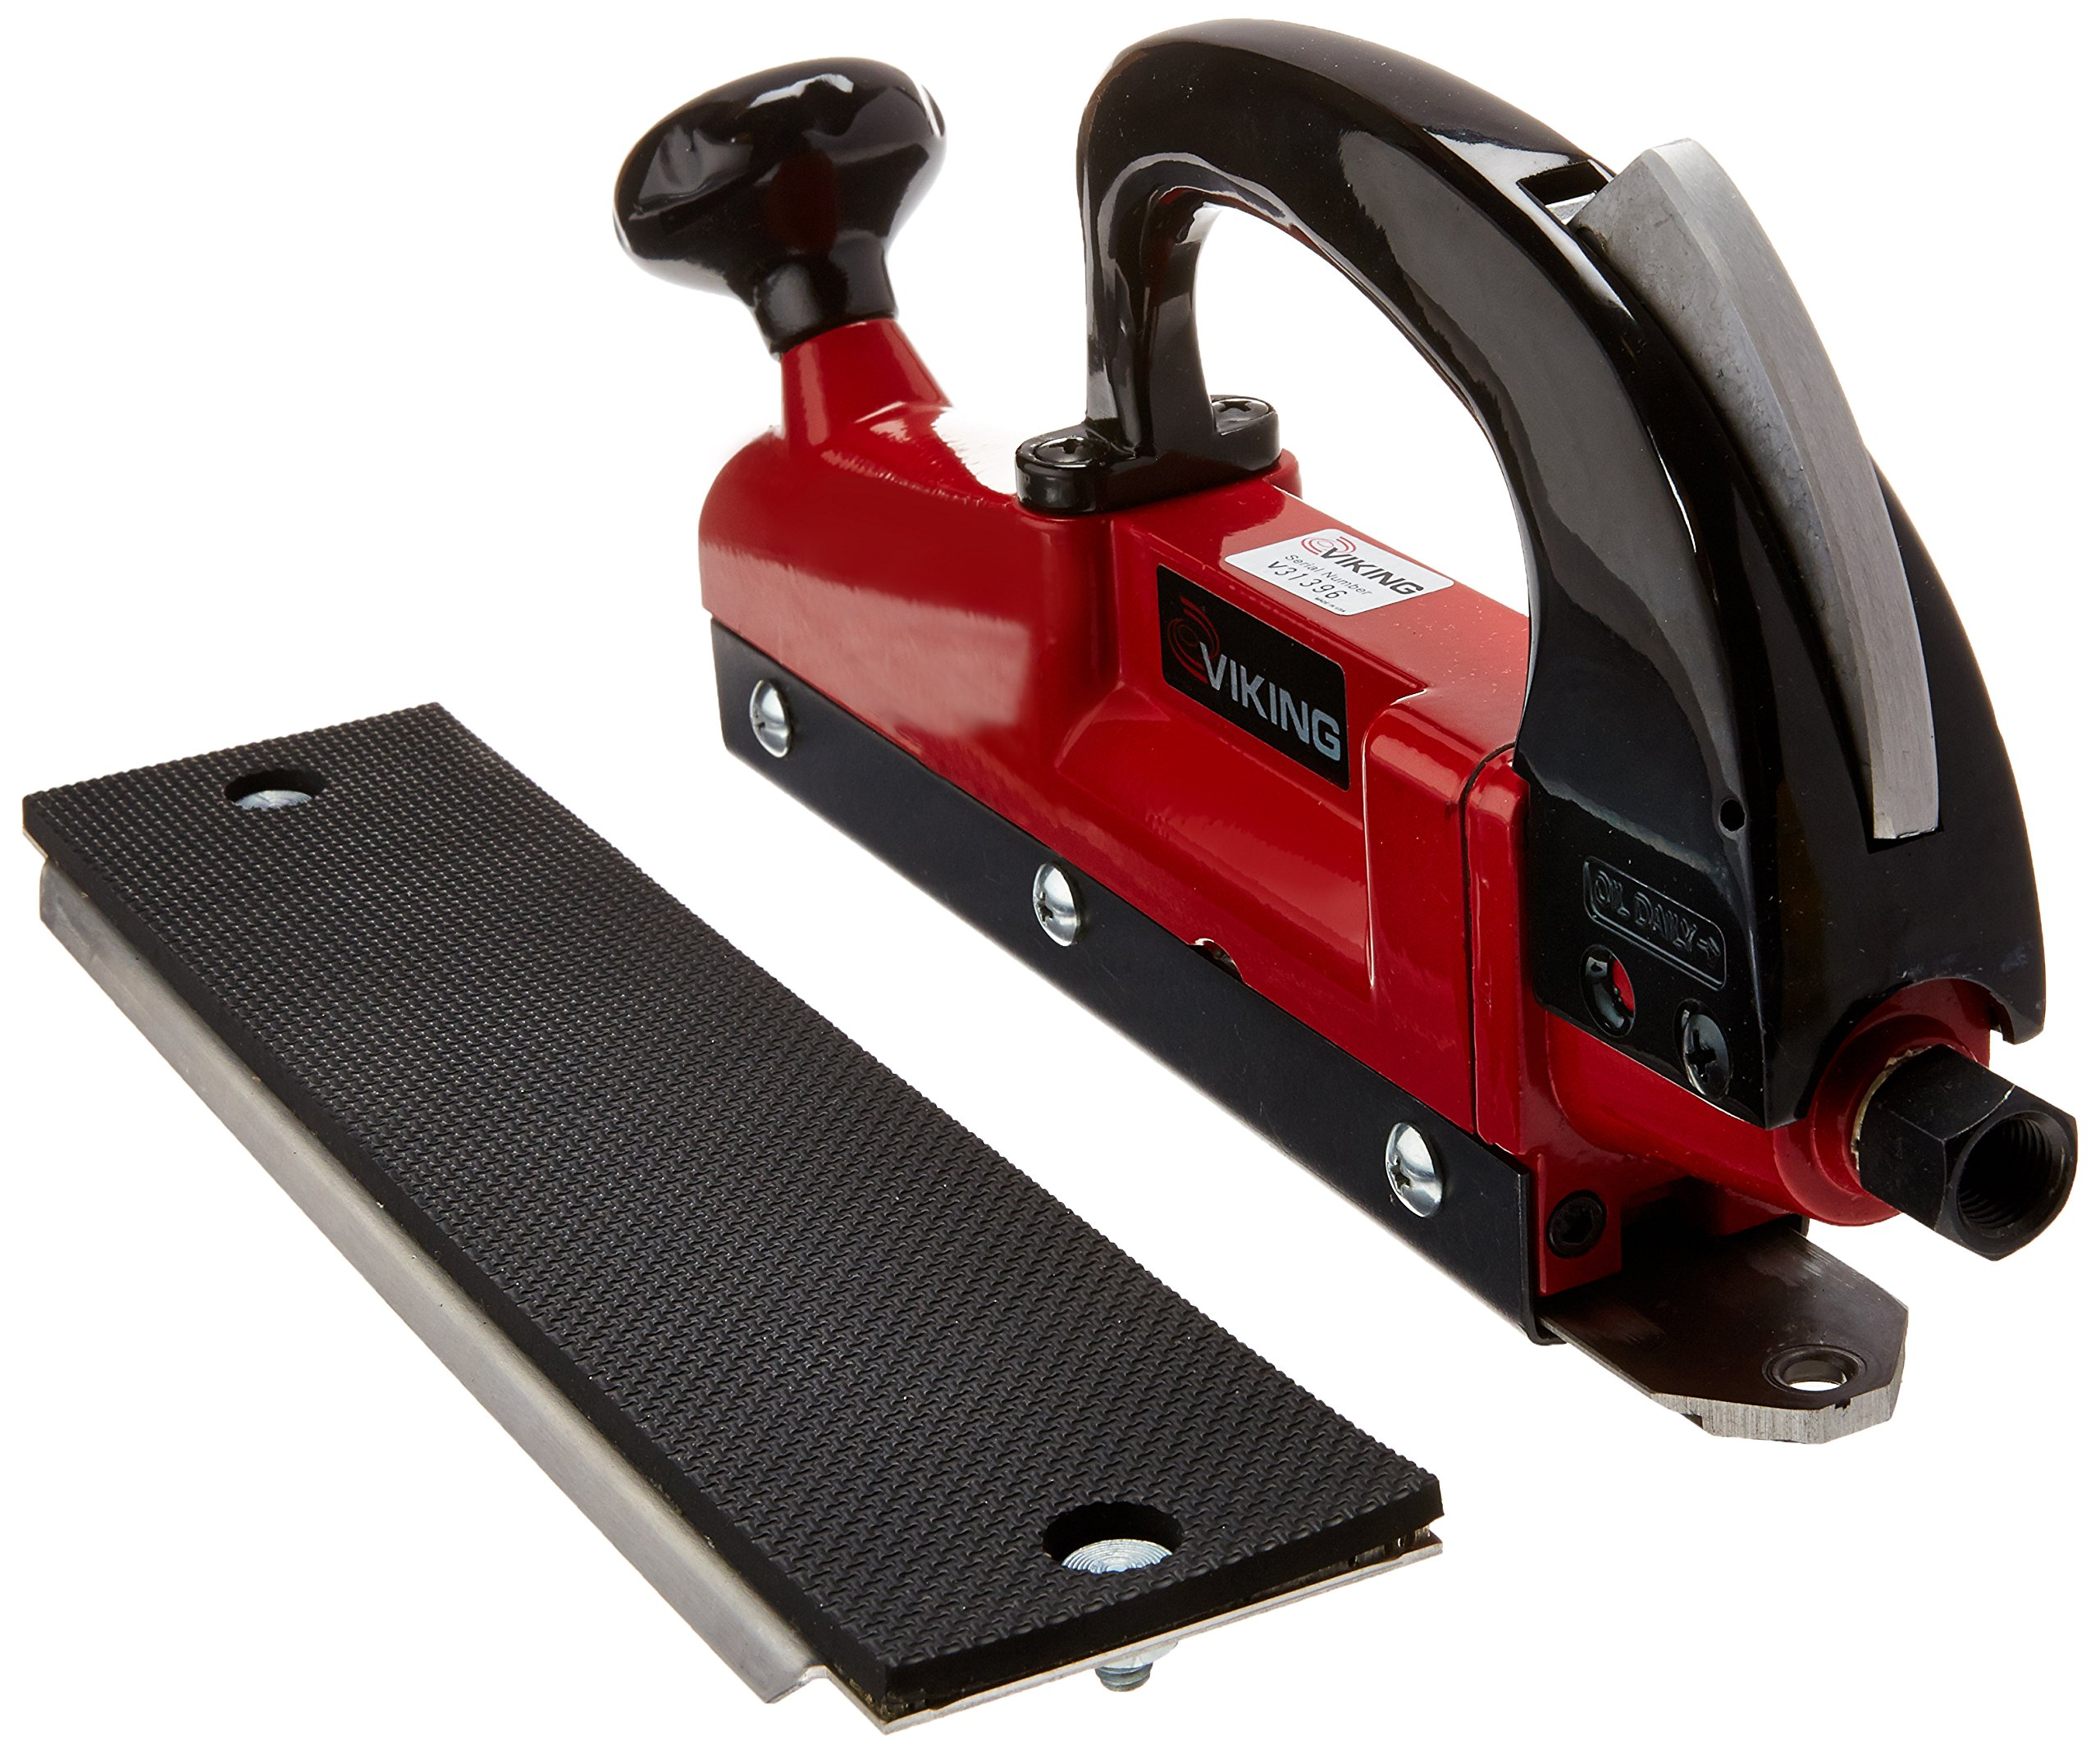 ALC Keysco V101 Air Sander by VIKING